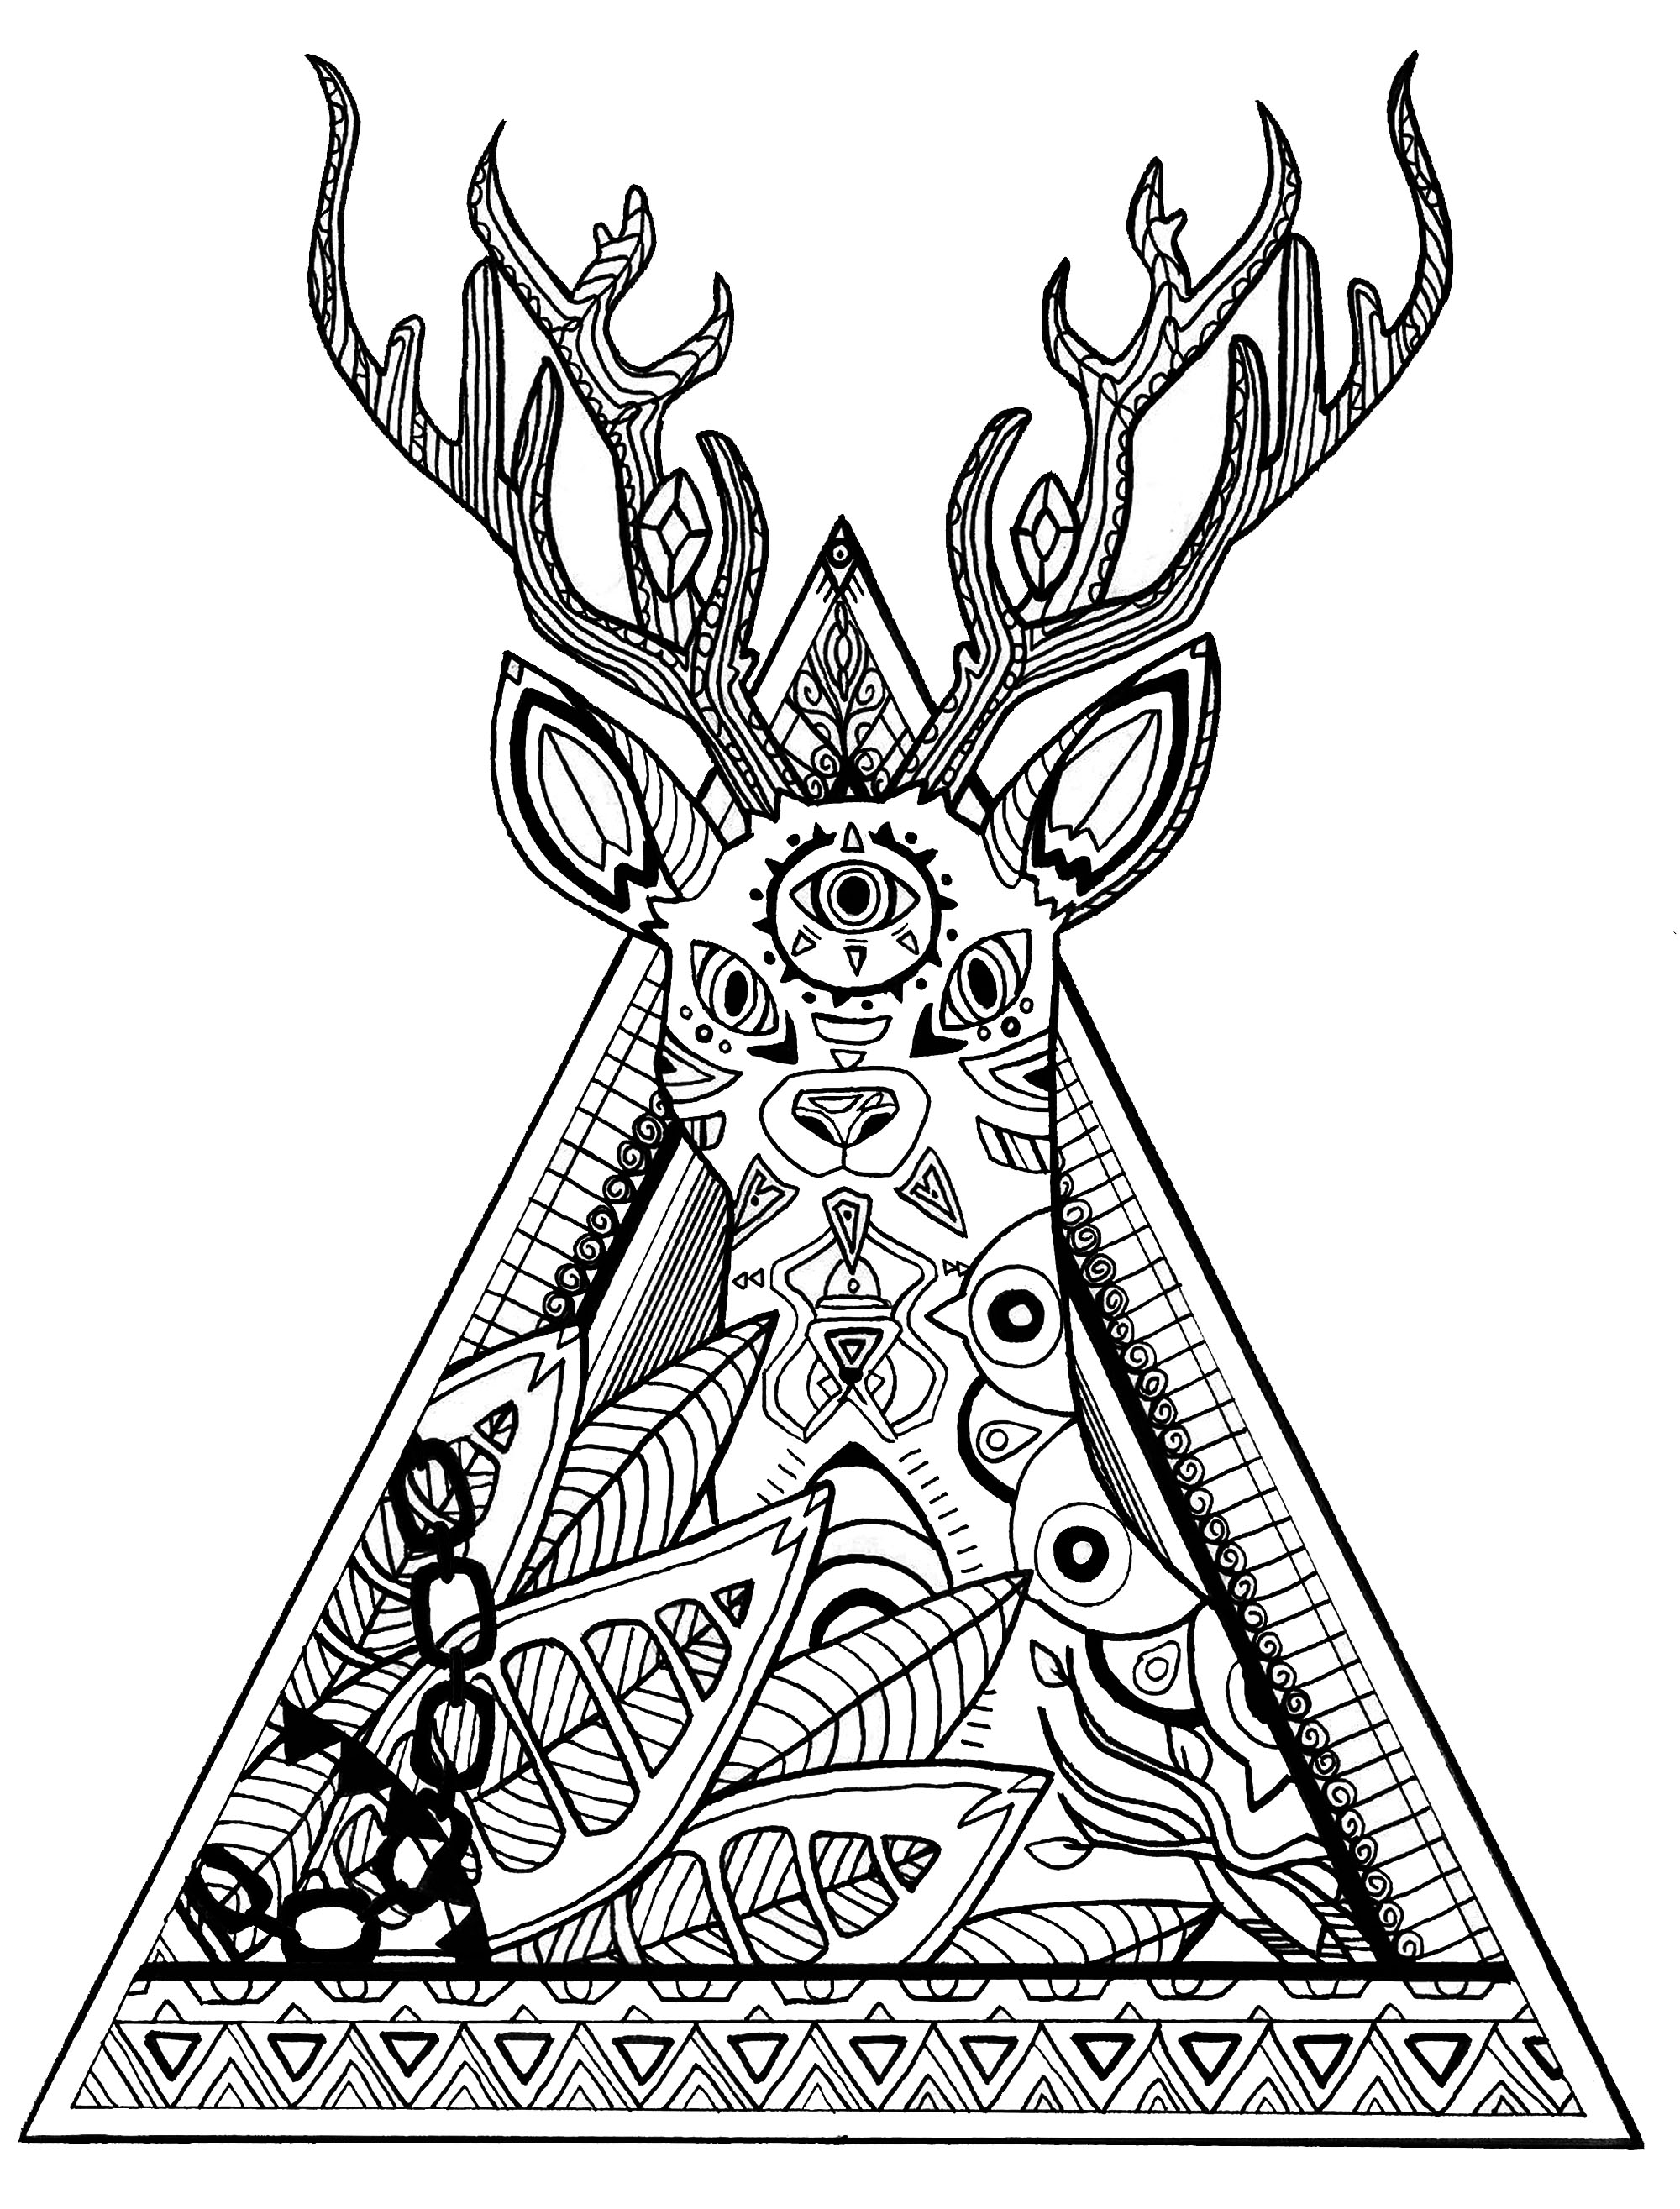 coloring page deer in a triangle free to print